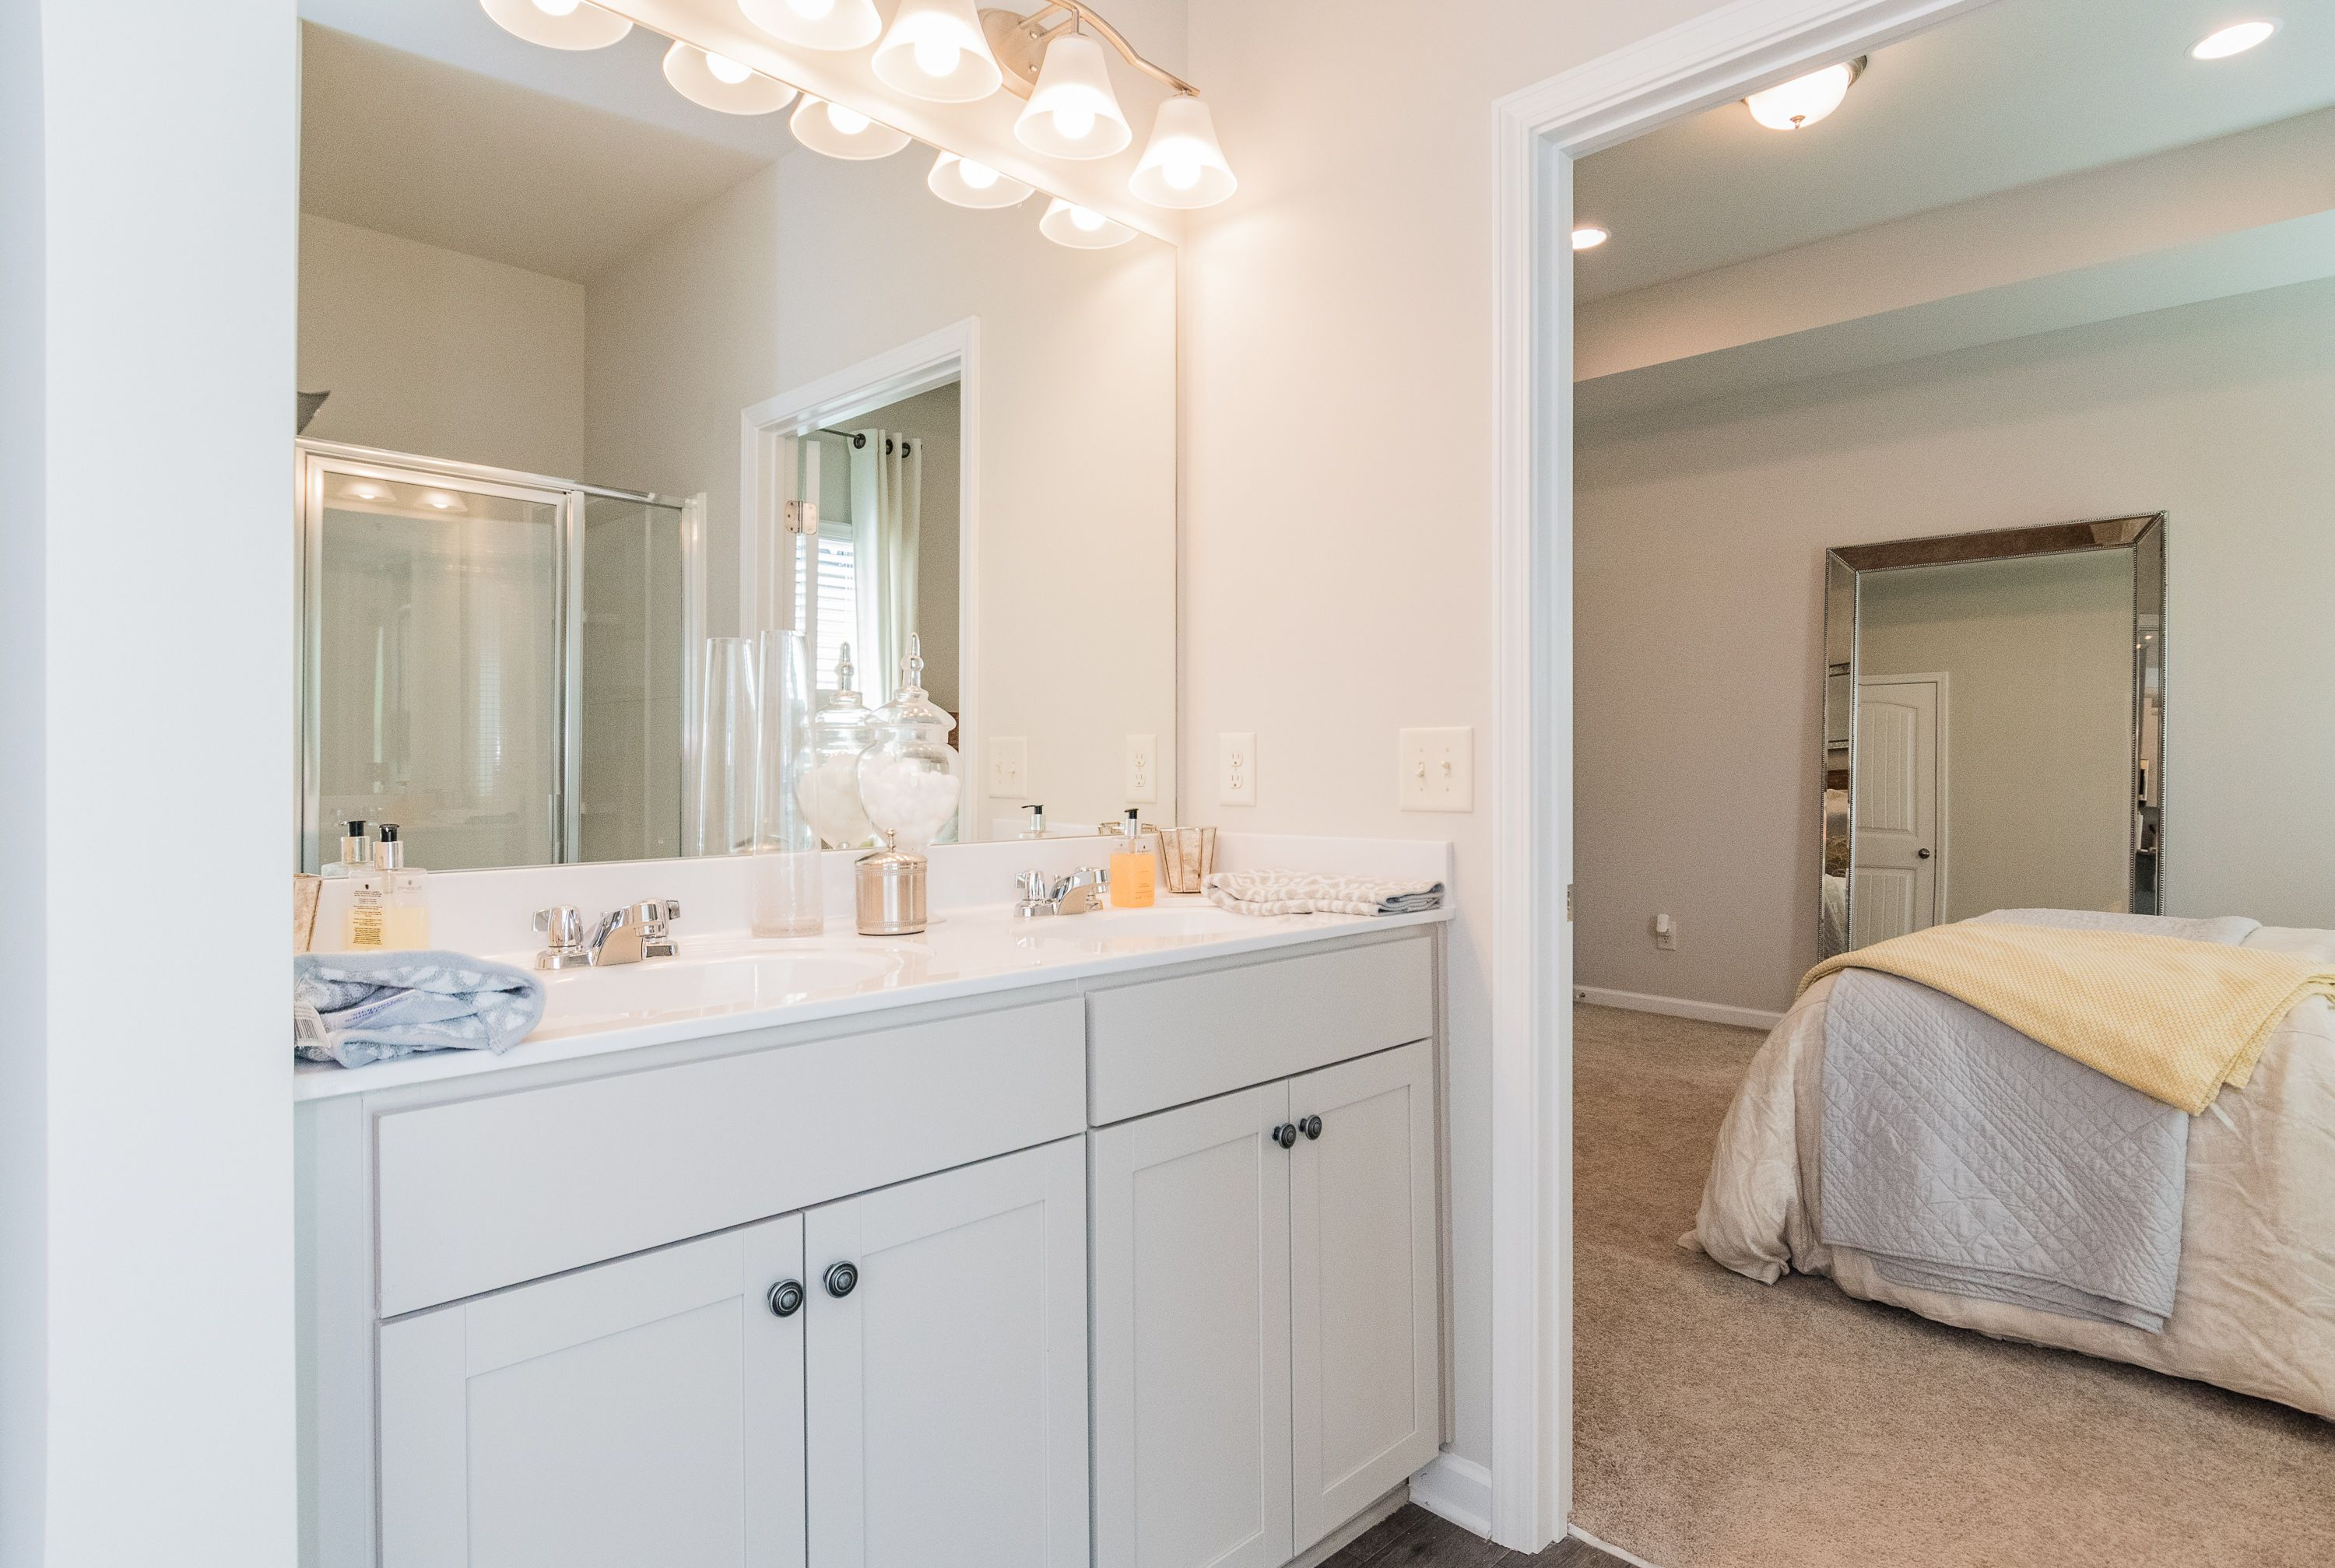 Bathroom featured in The Lathem By Smith Douglas Homes in Huntsville, AL